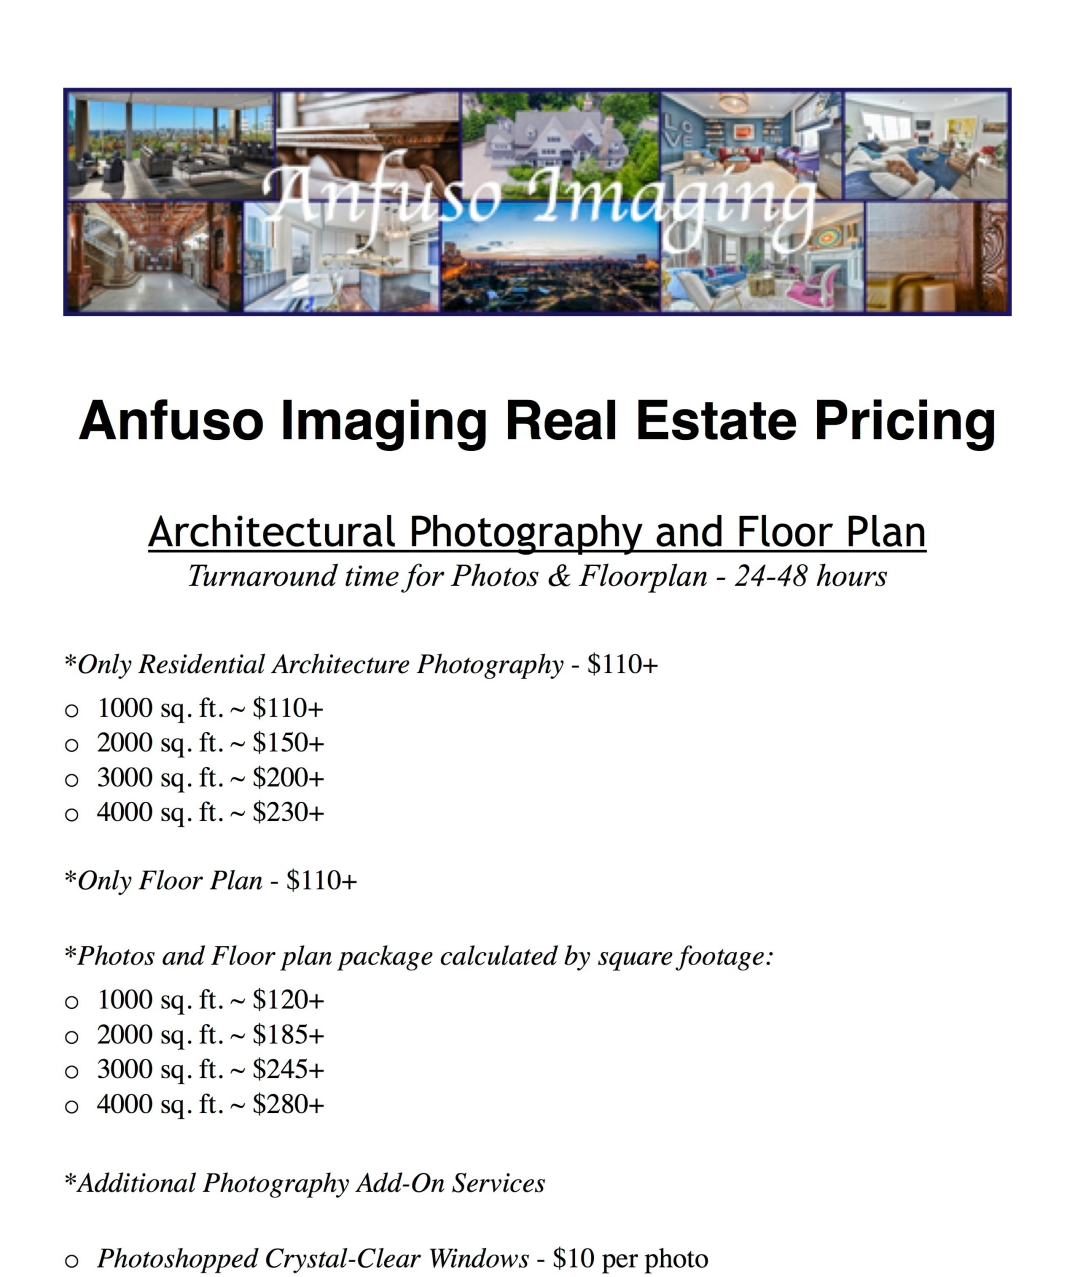 pricing-2017-for-real-estate1.jpg